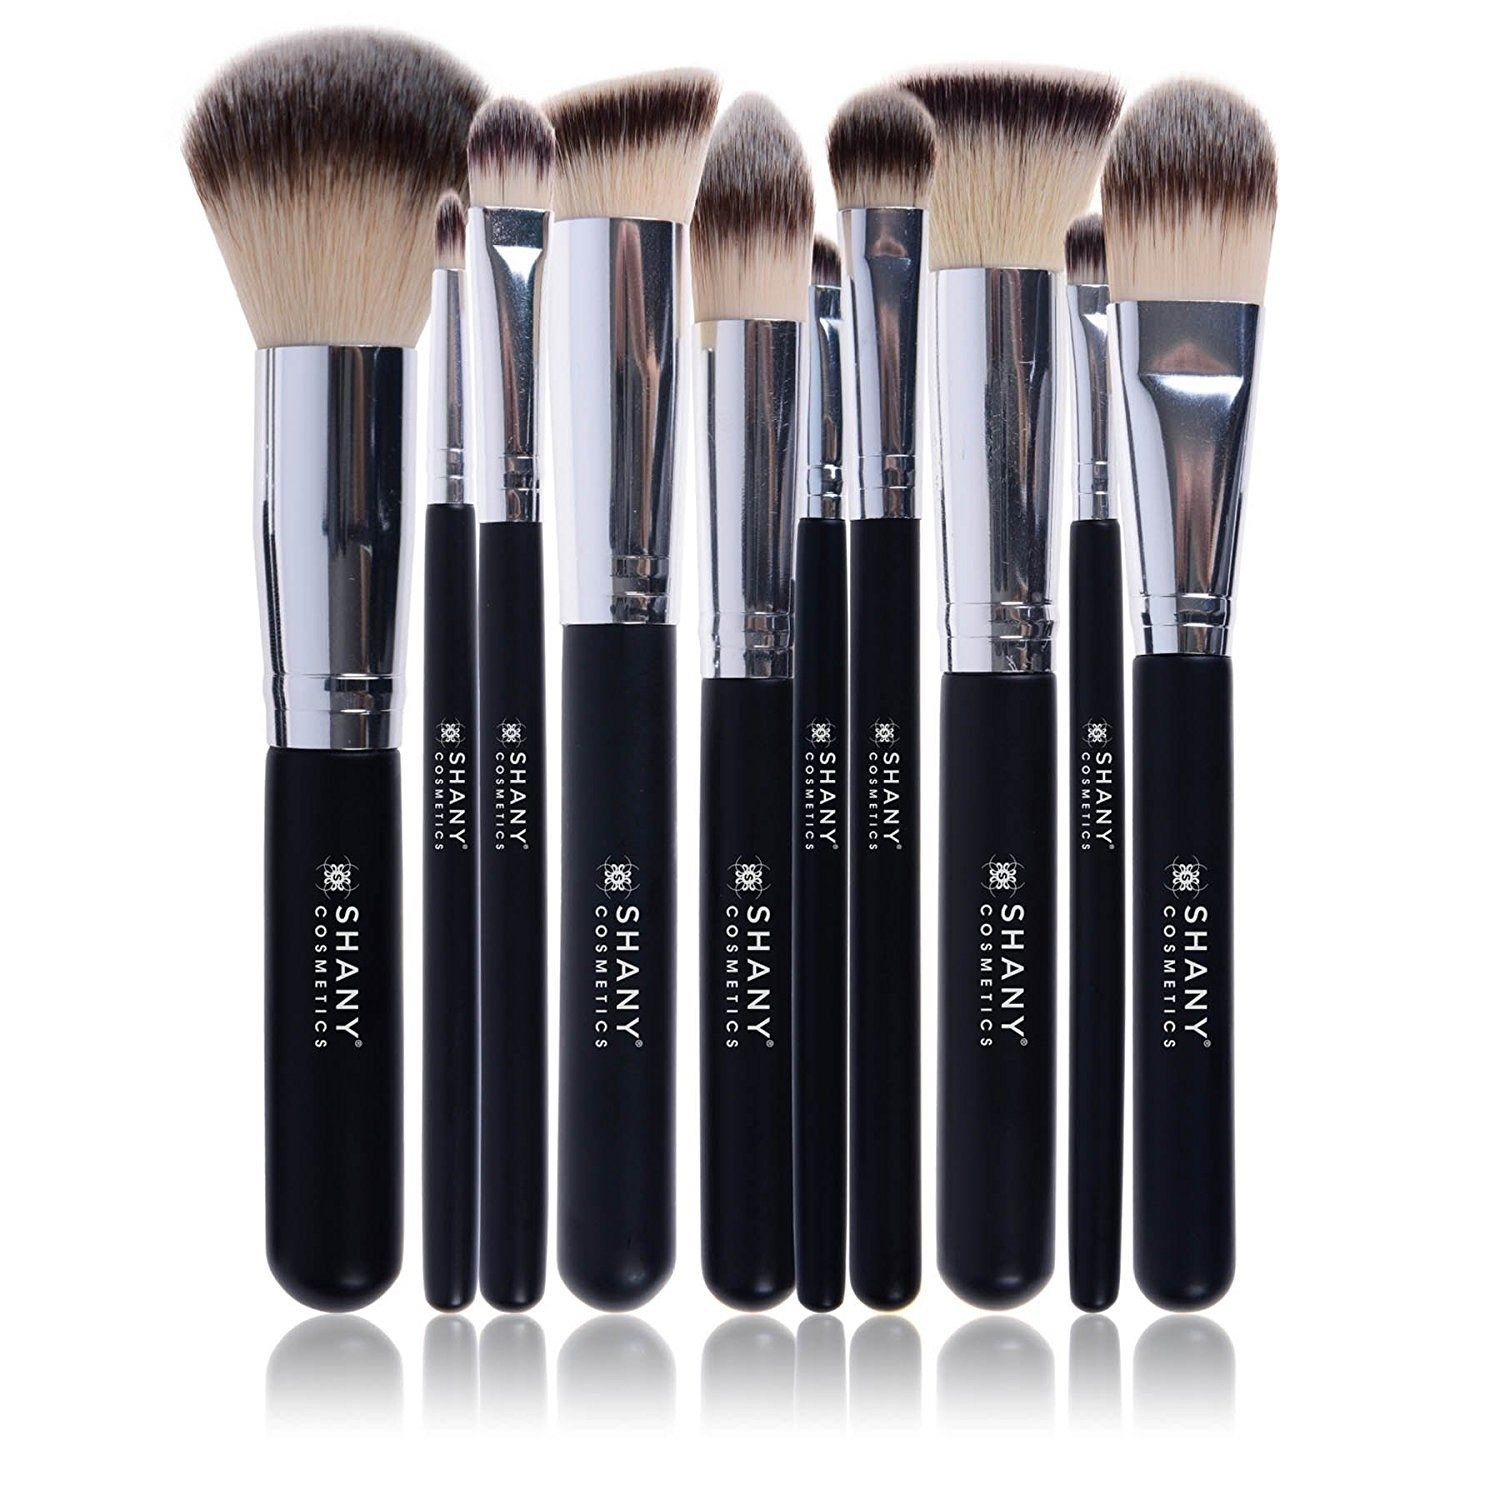 19 Of The Best Makeup Brushes You Can Get On Amazon (With